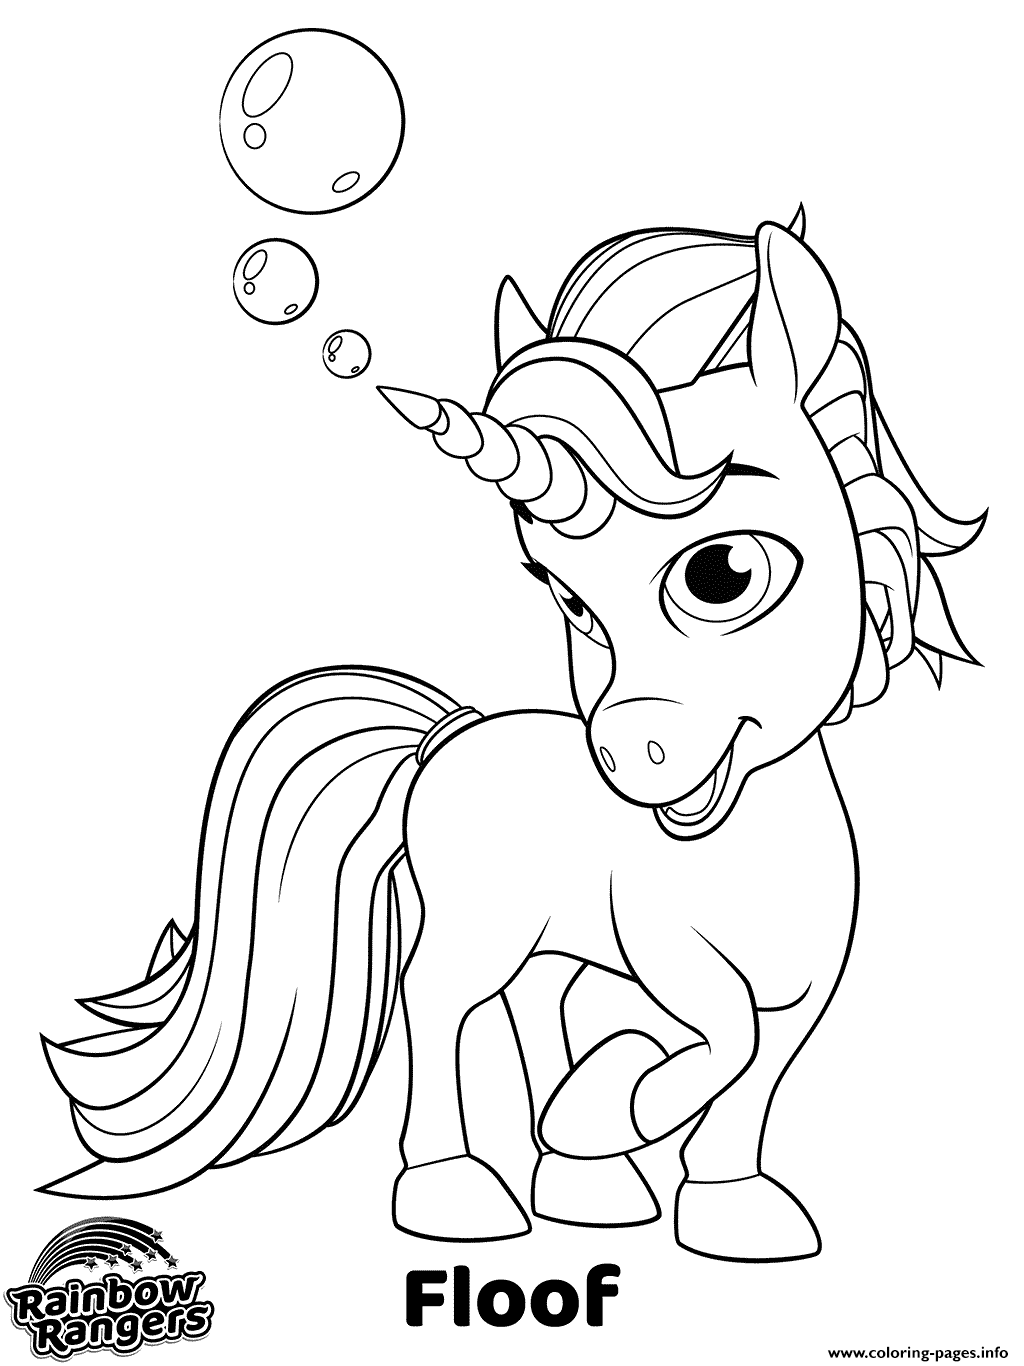 Rainbow Rangers Unicorn Floof Coloring Pages Printable